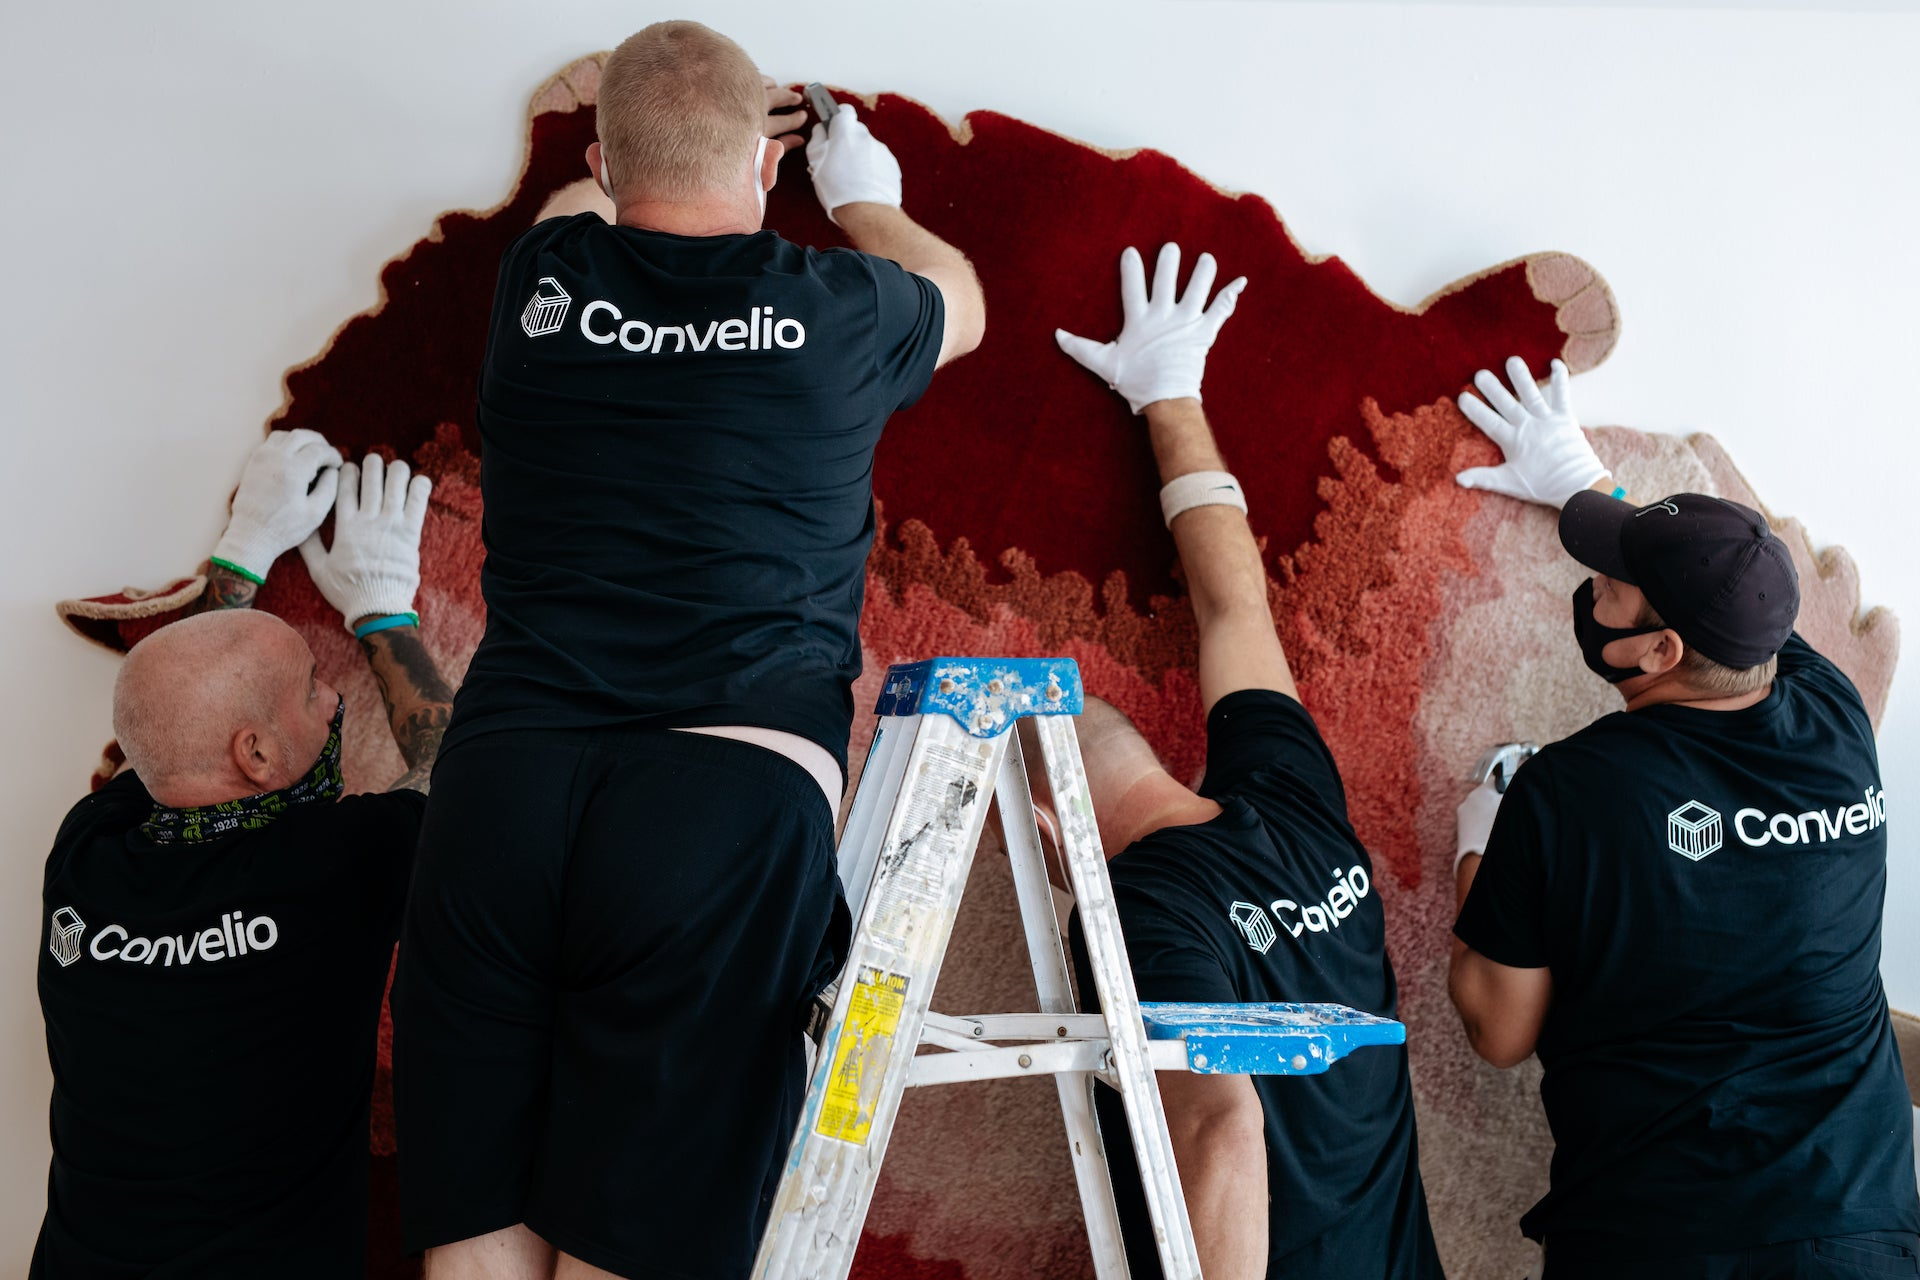 Convelio installing the Haas Brothers' La Brea Brad Pitt Carpet for R & Company at Design Miami/ 2020. Photo © Adinayev